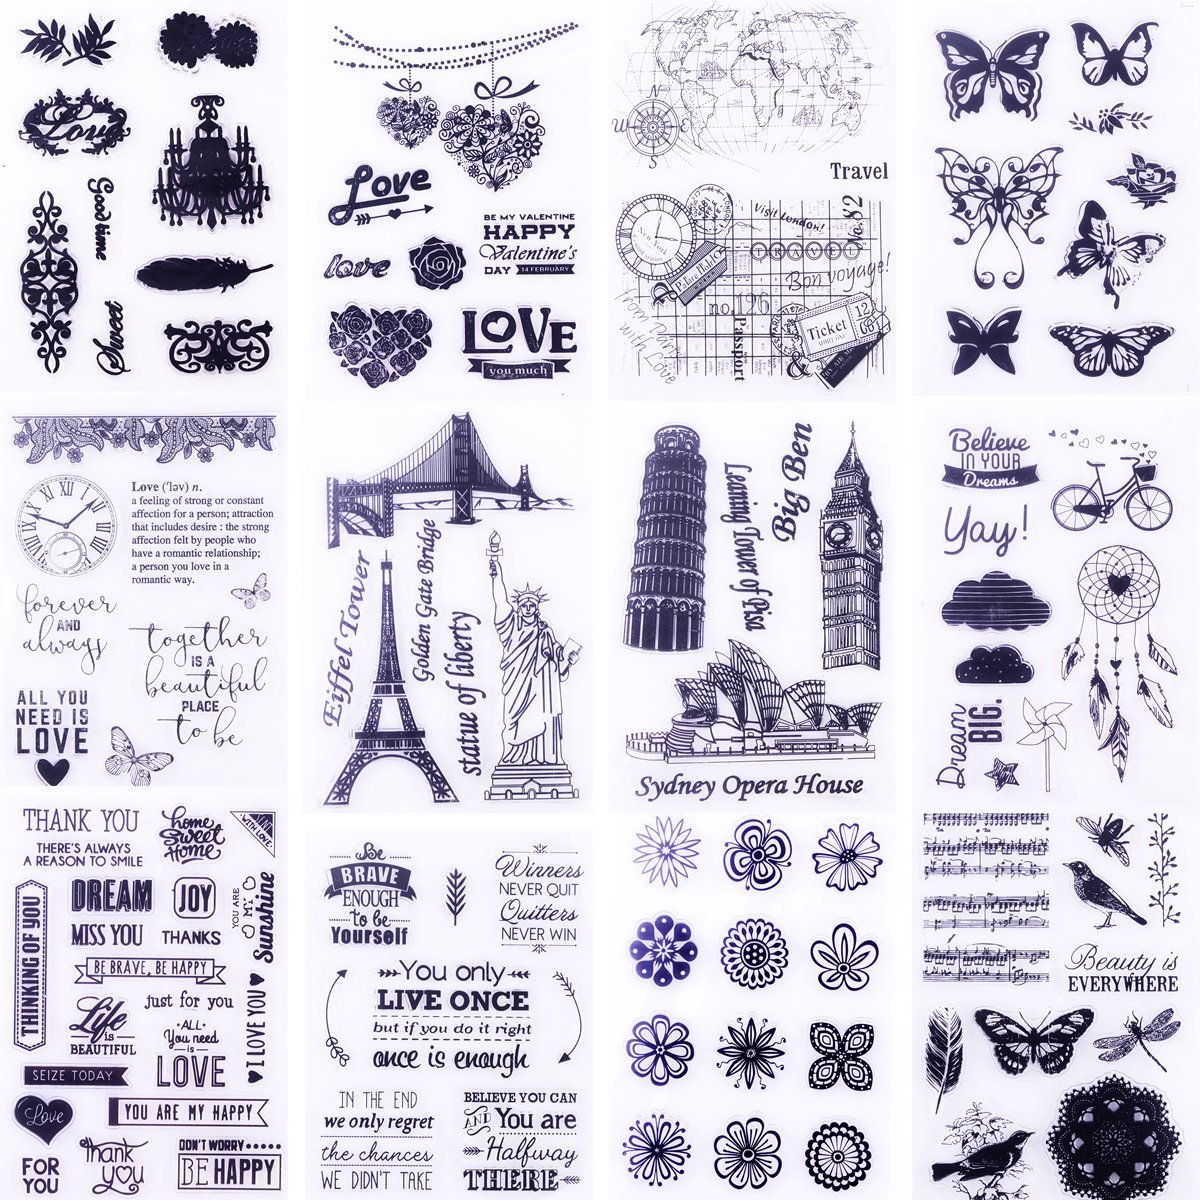 Clear Stamps for Cards Making 8 Sheets Scrapbook Rubber Silicone for DIY Scrapbooking Seal Photo Album Wish Decorative Butterfly Love Heart Words (8 Sheets) clear stamps for card making eswala Clear Stamps 8